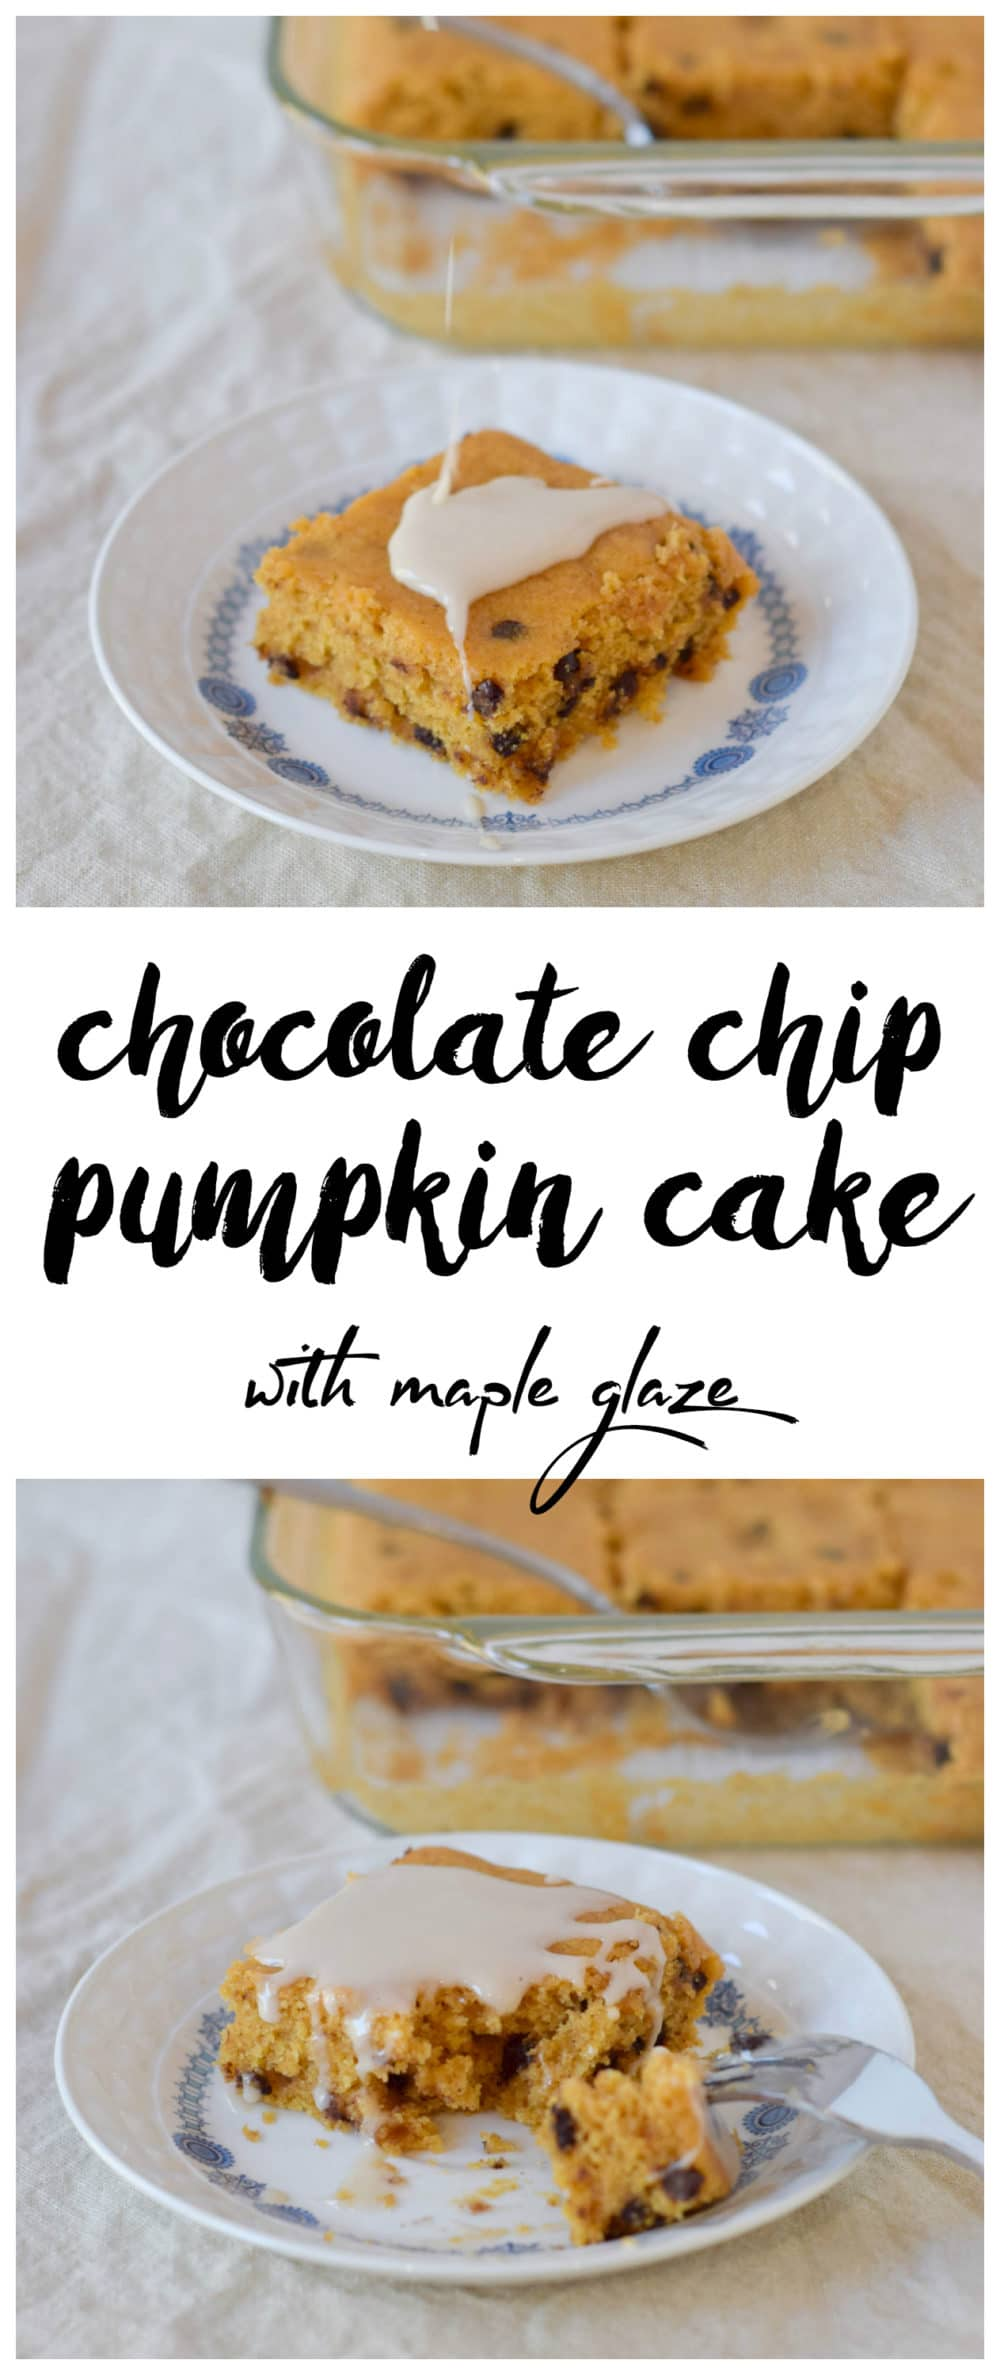 Chocolate Chip Pumpkin Cake with Maple Glaze (#GlutenFree and #Vegan) - @TheFitCookie #fitfluential #pumpkin